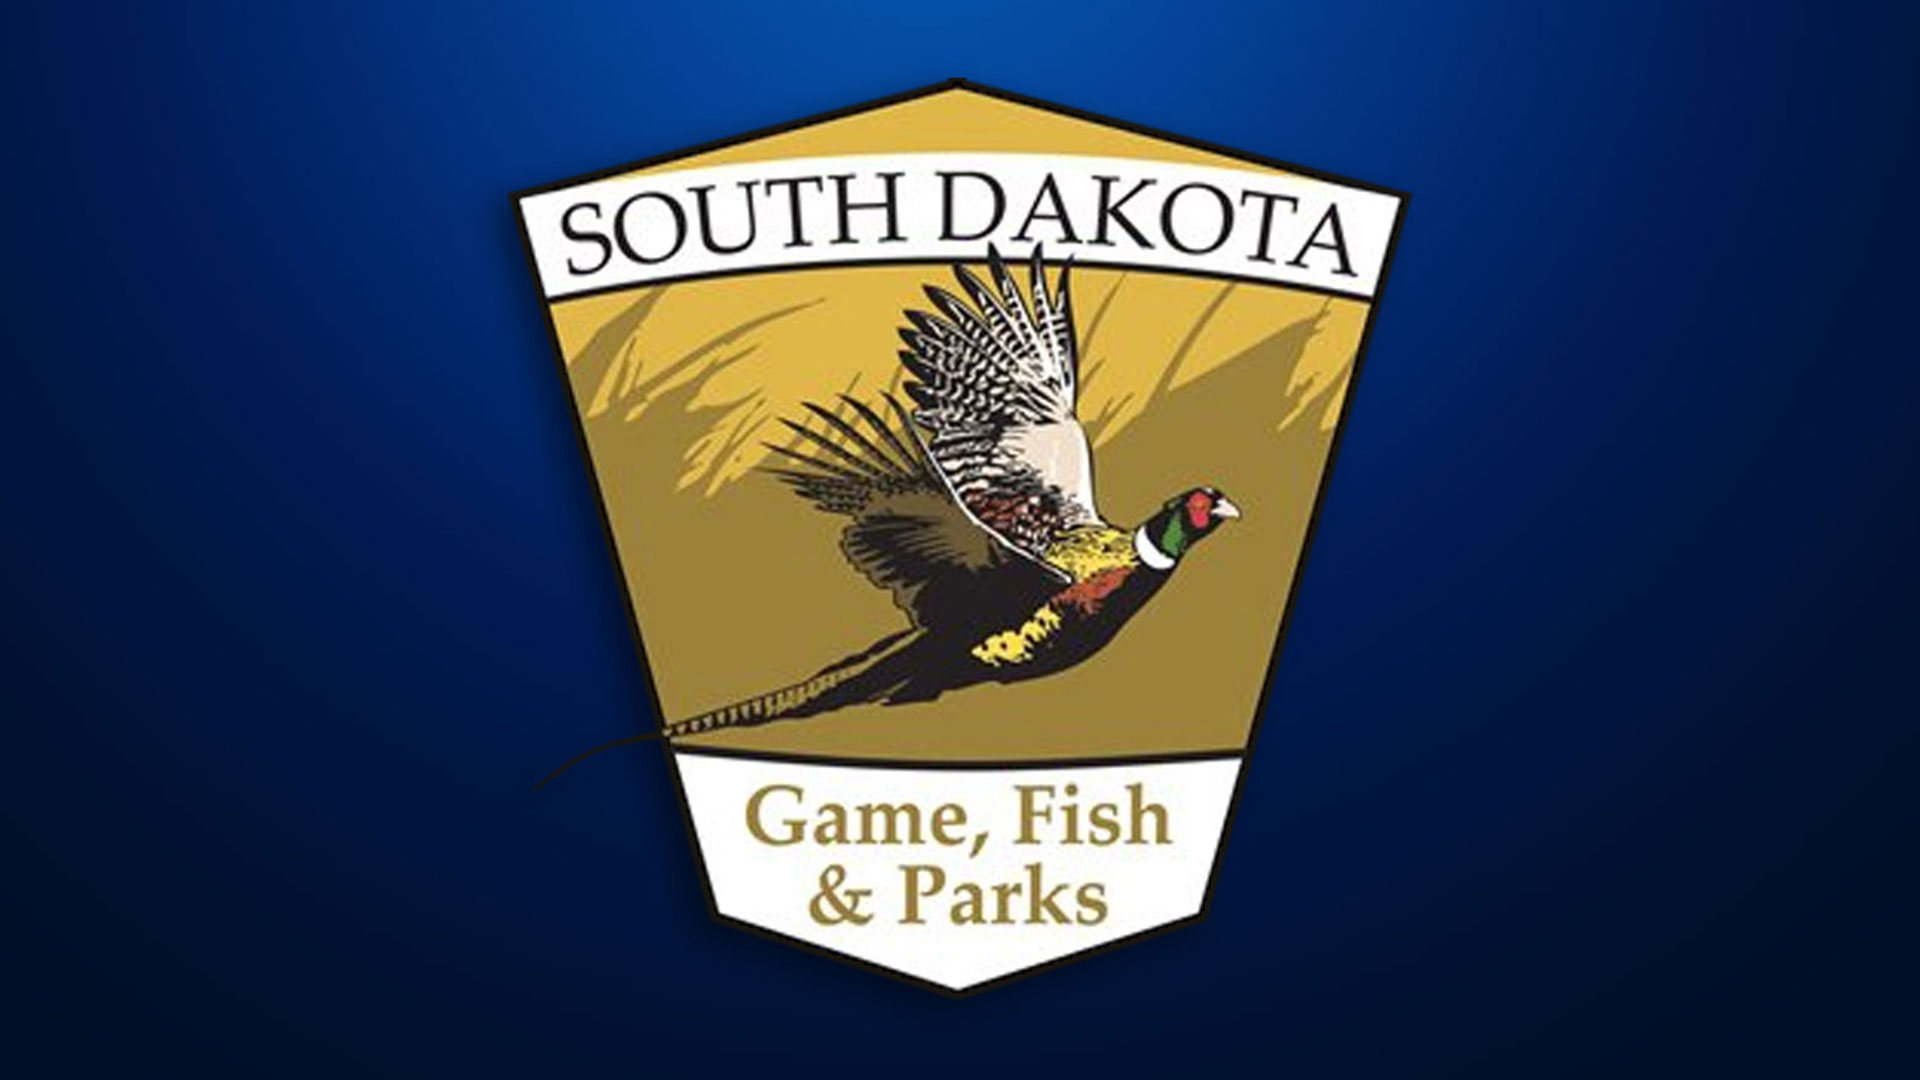 South Dakota Game Fish and Parks Department